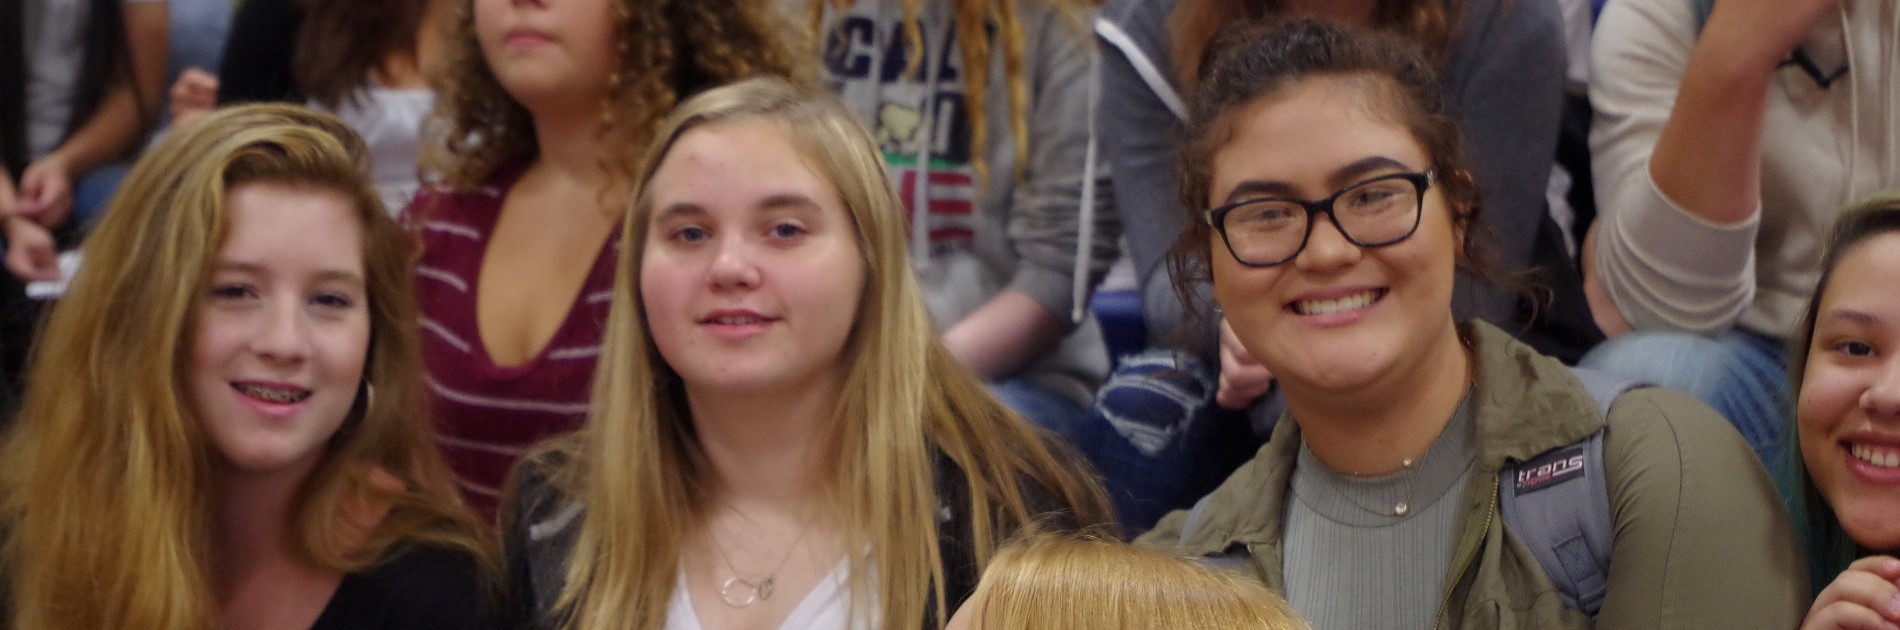 NMHS students smiling at the welcome back assembly.